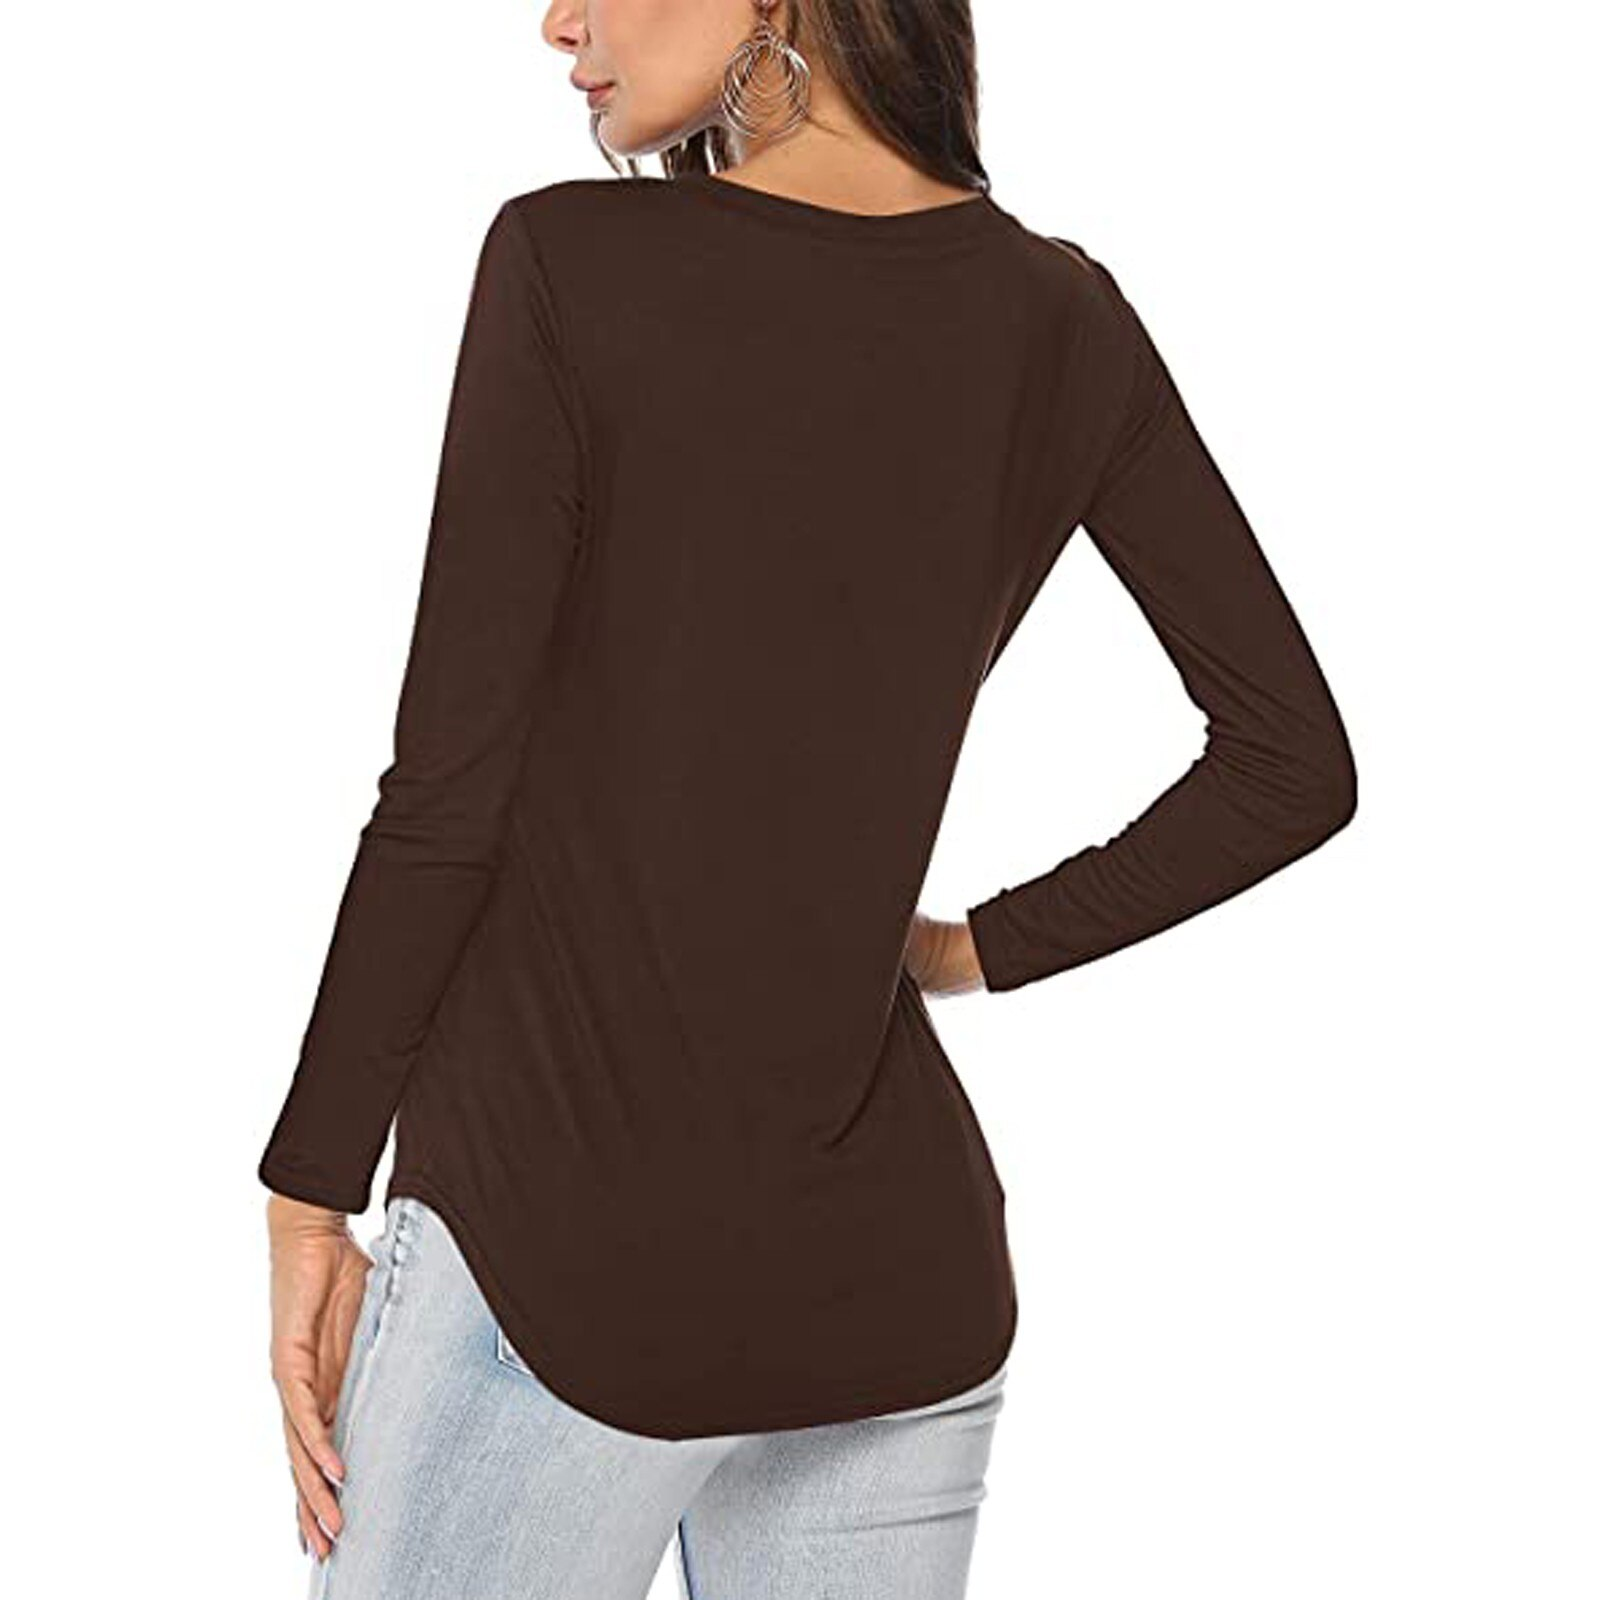 Women T-Shirts Sexy V Neck Top Solid Color Loose Long Sleeve Casual Lady Basic Tshirt Top Womens Clothing Autumn Spring Shirt